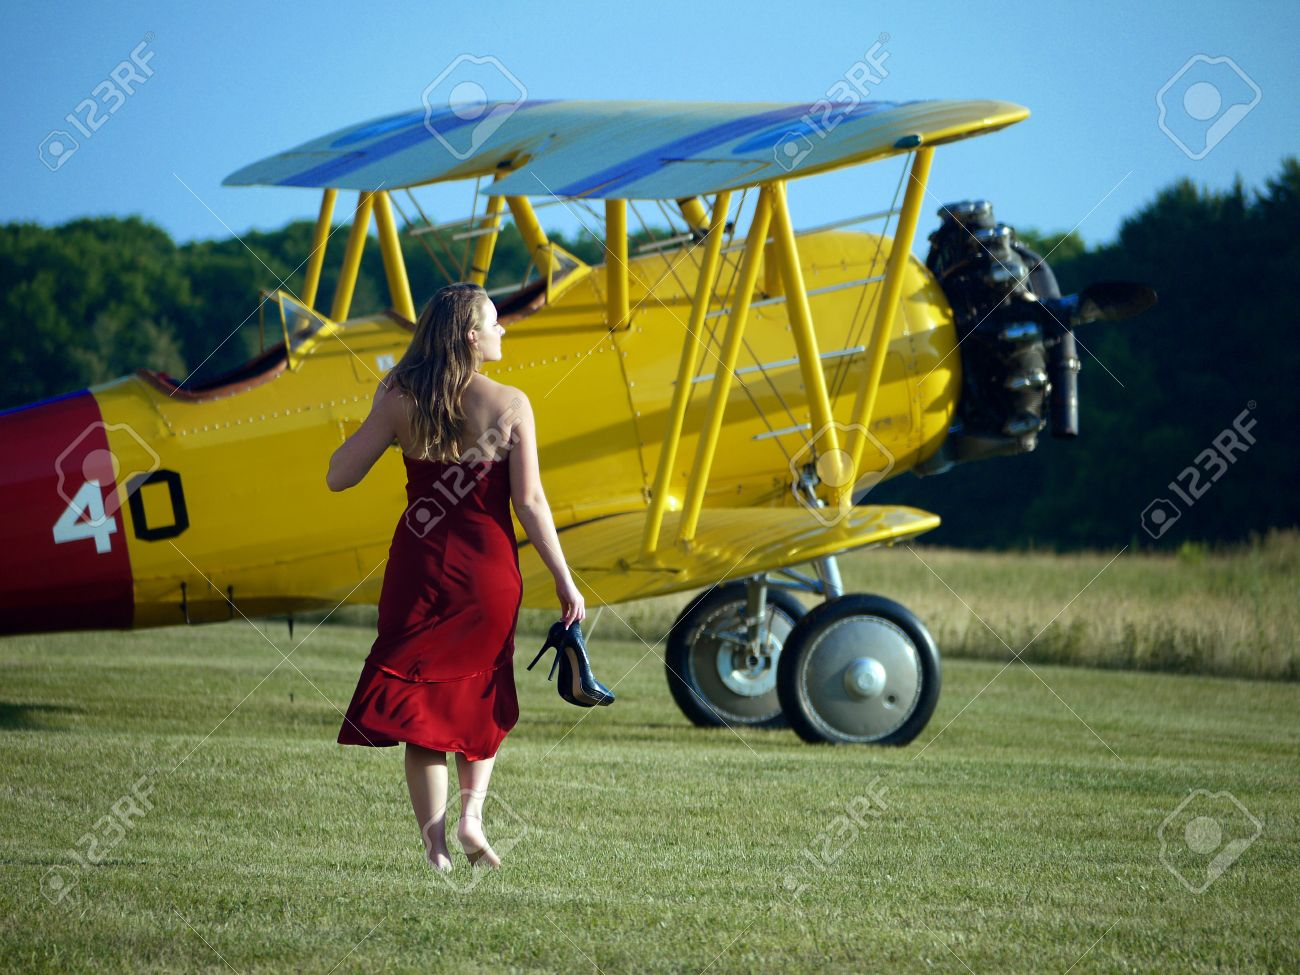 Model by Antique Airplane